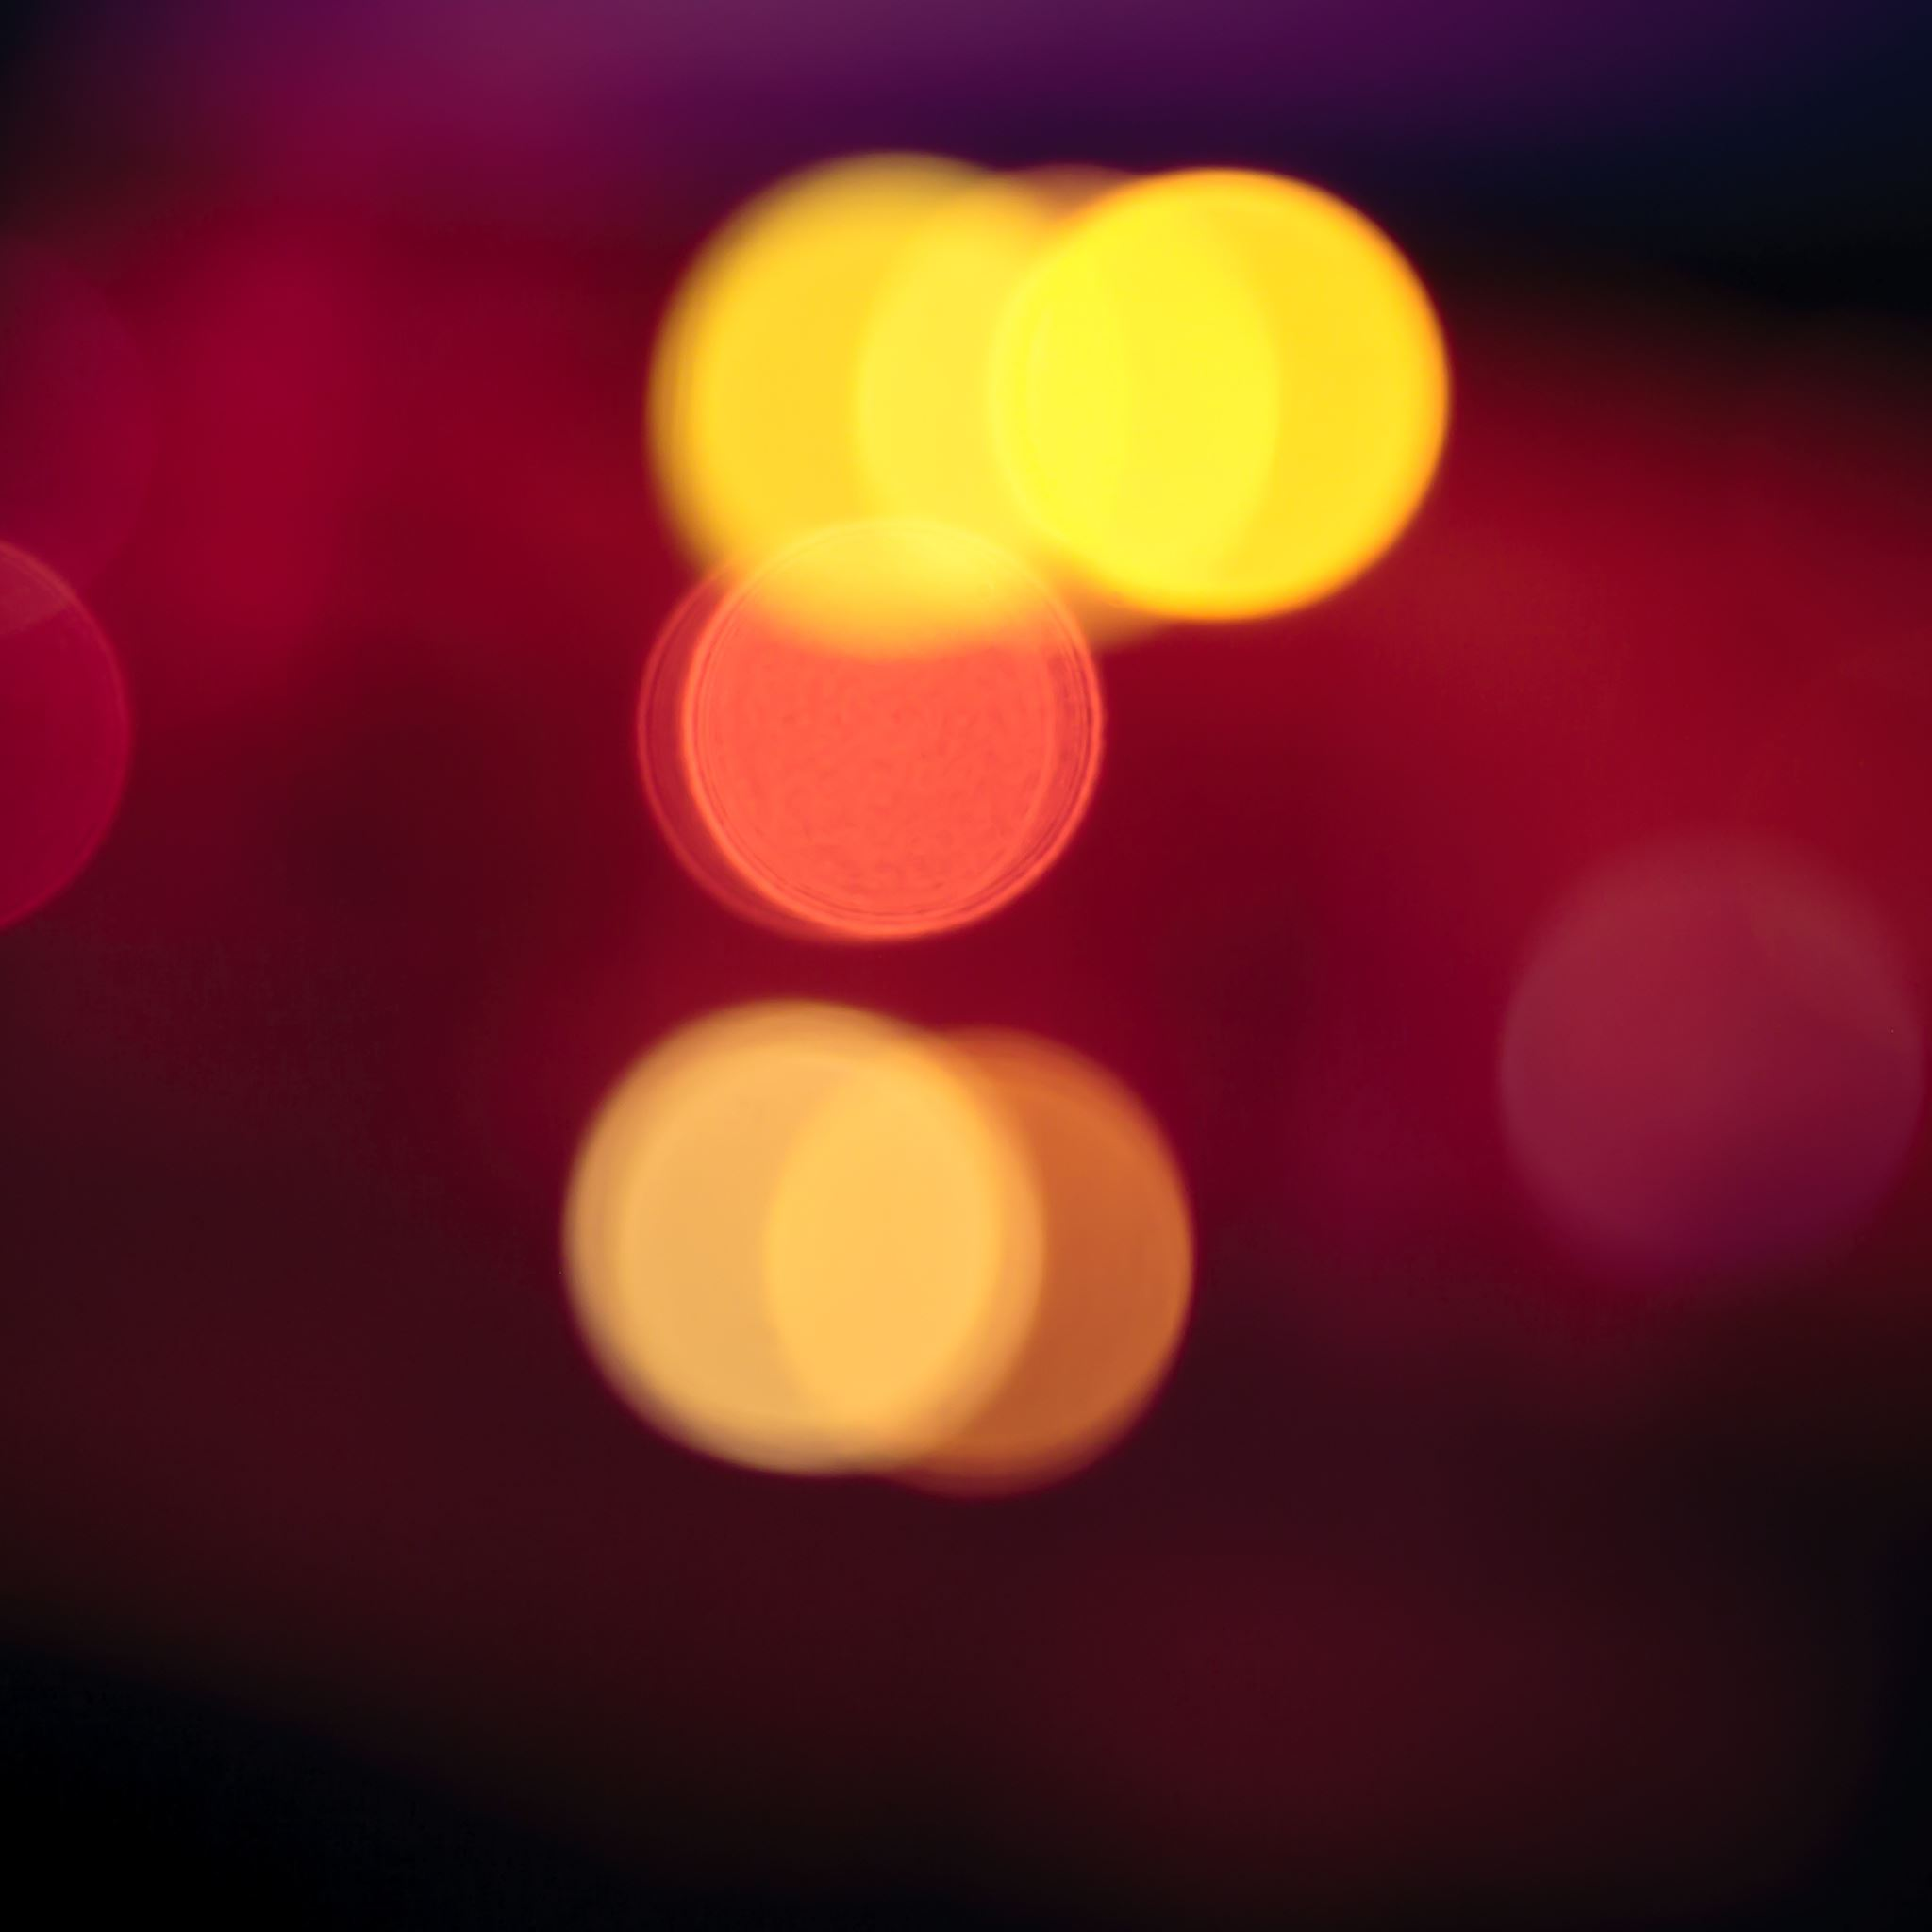 Red Light Blur iPad Air wallpaper